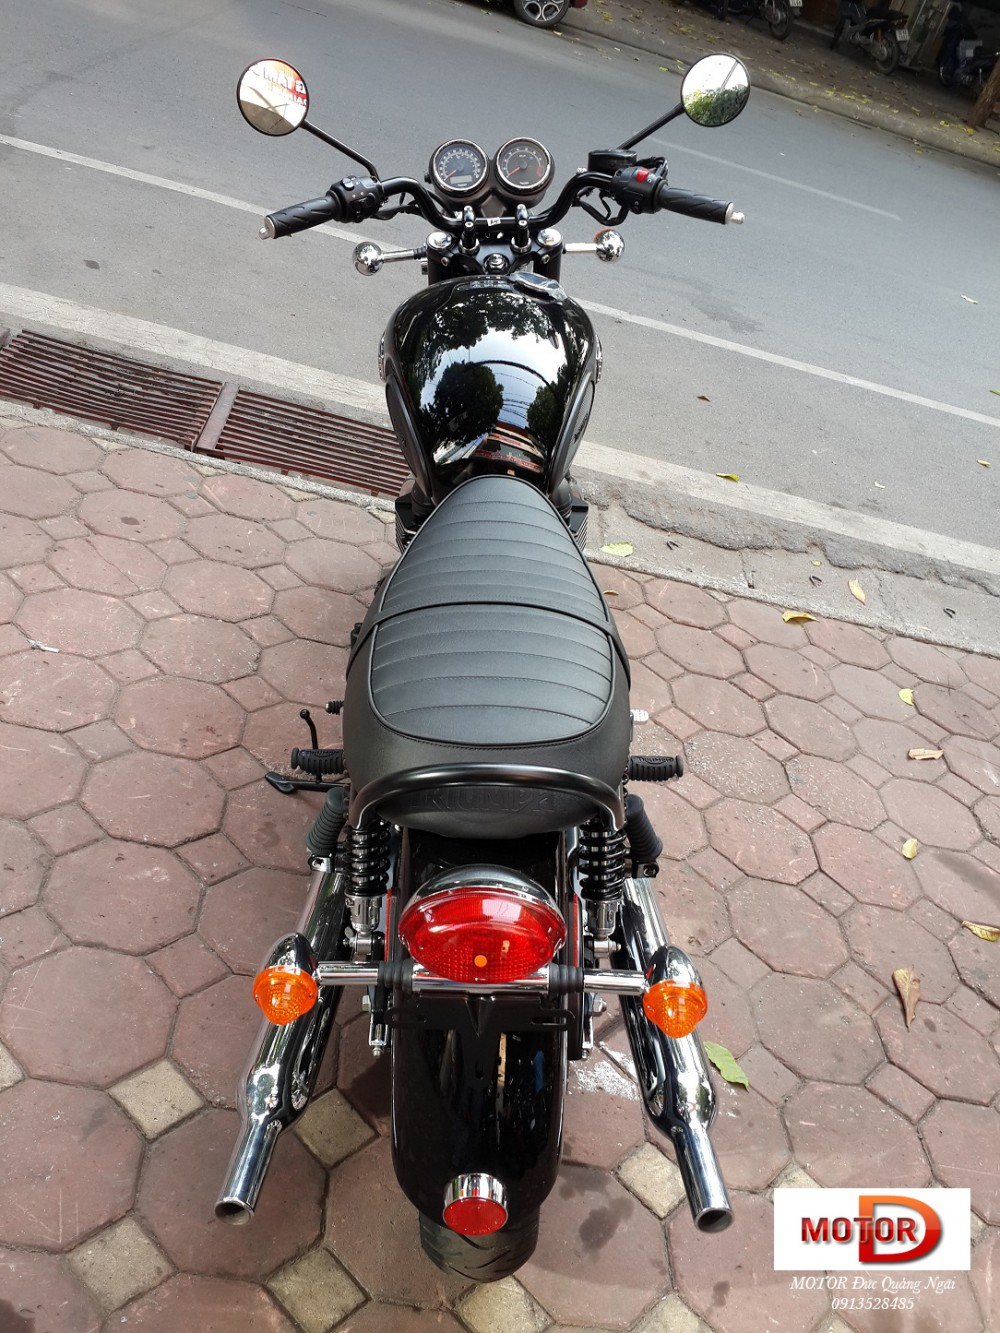 May em Triumph Bonneville vua ve doi - 9